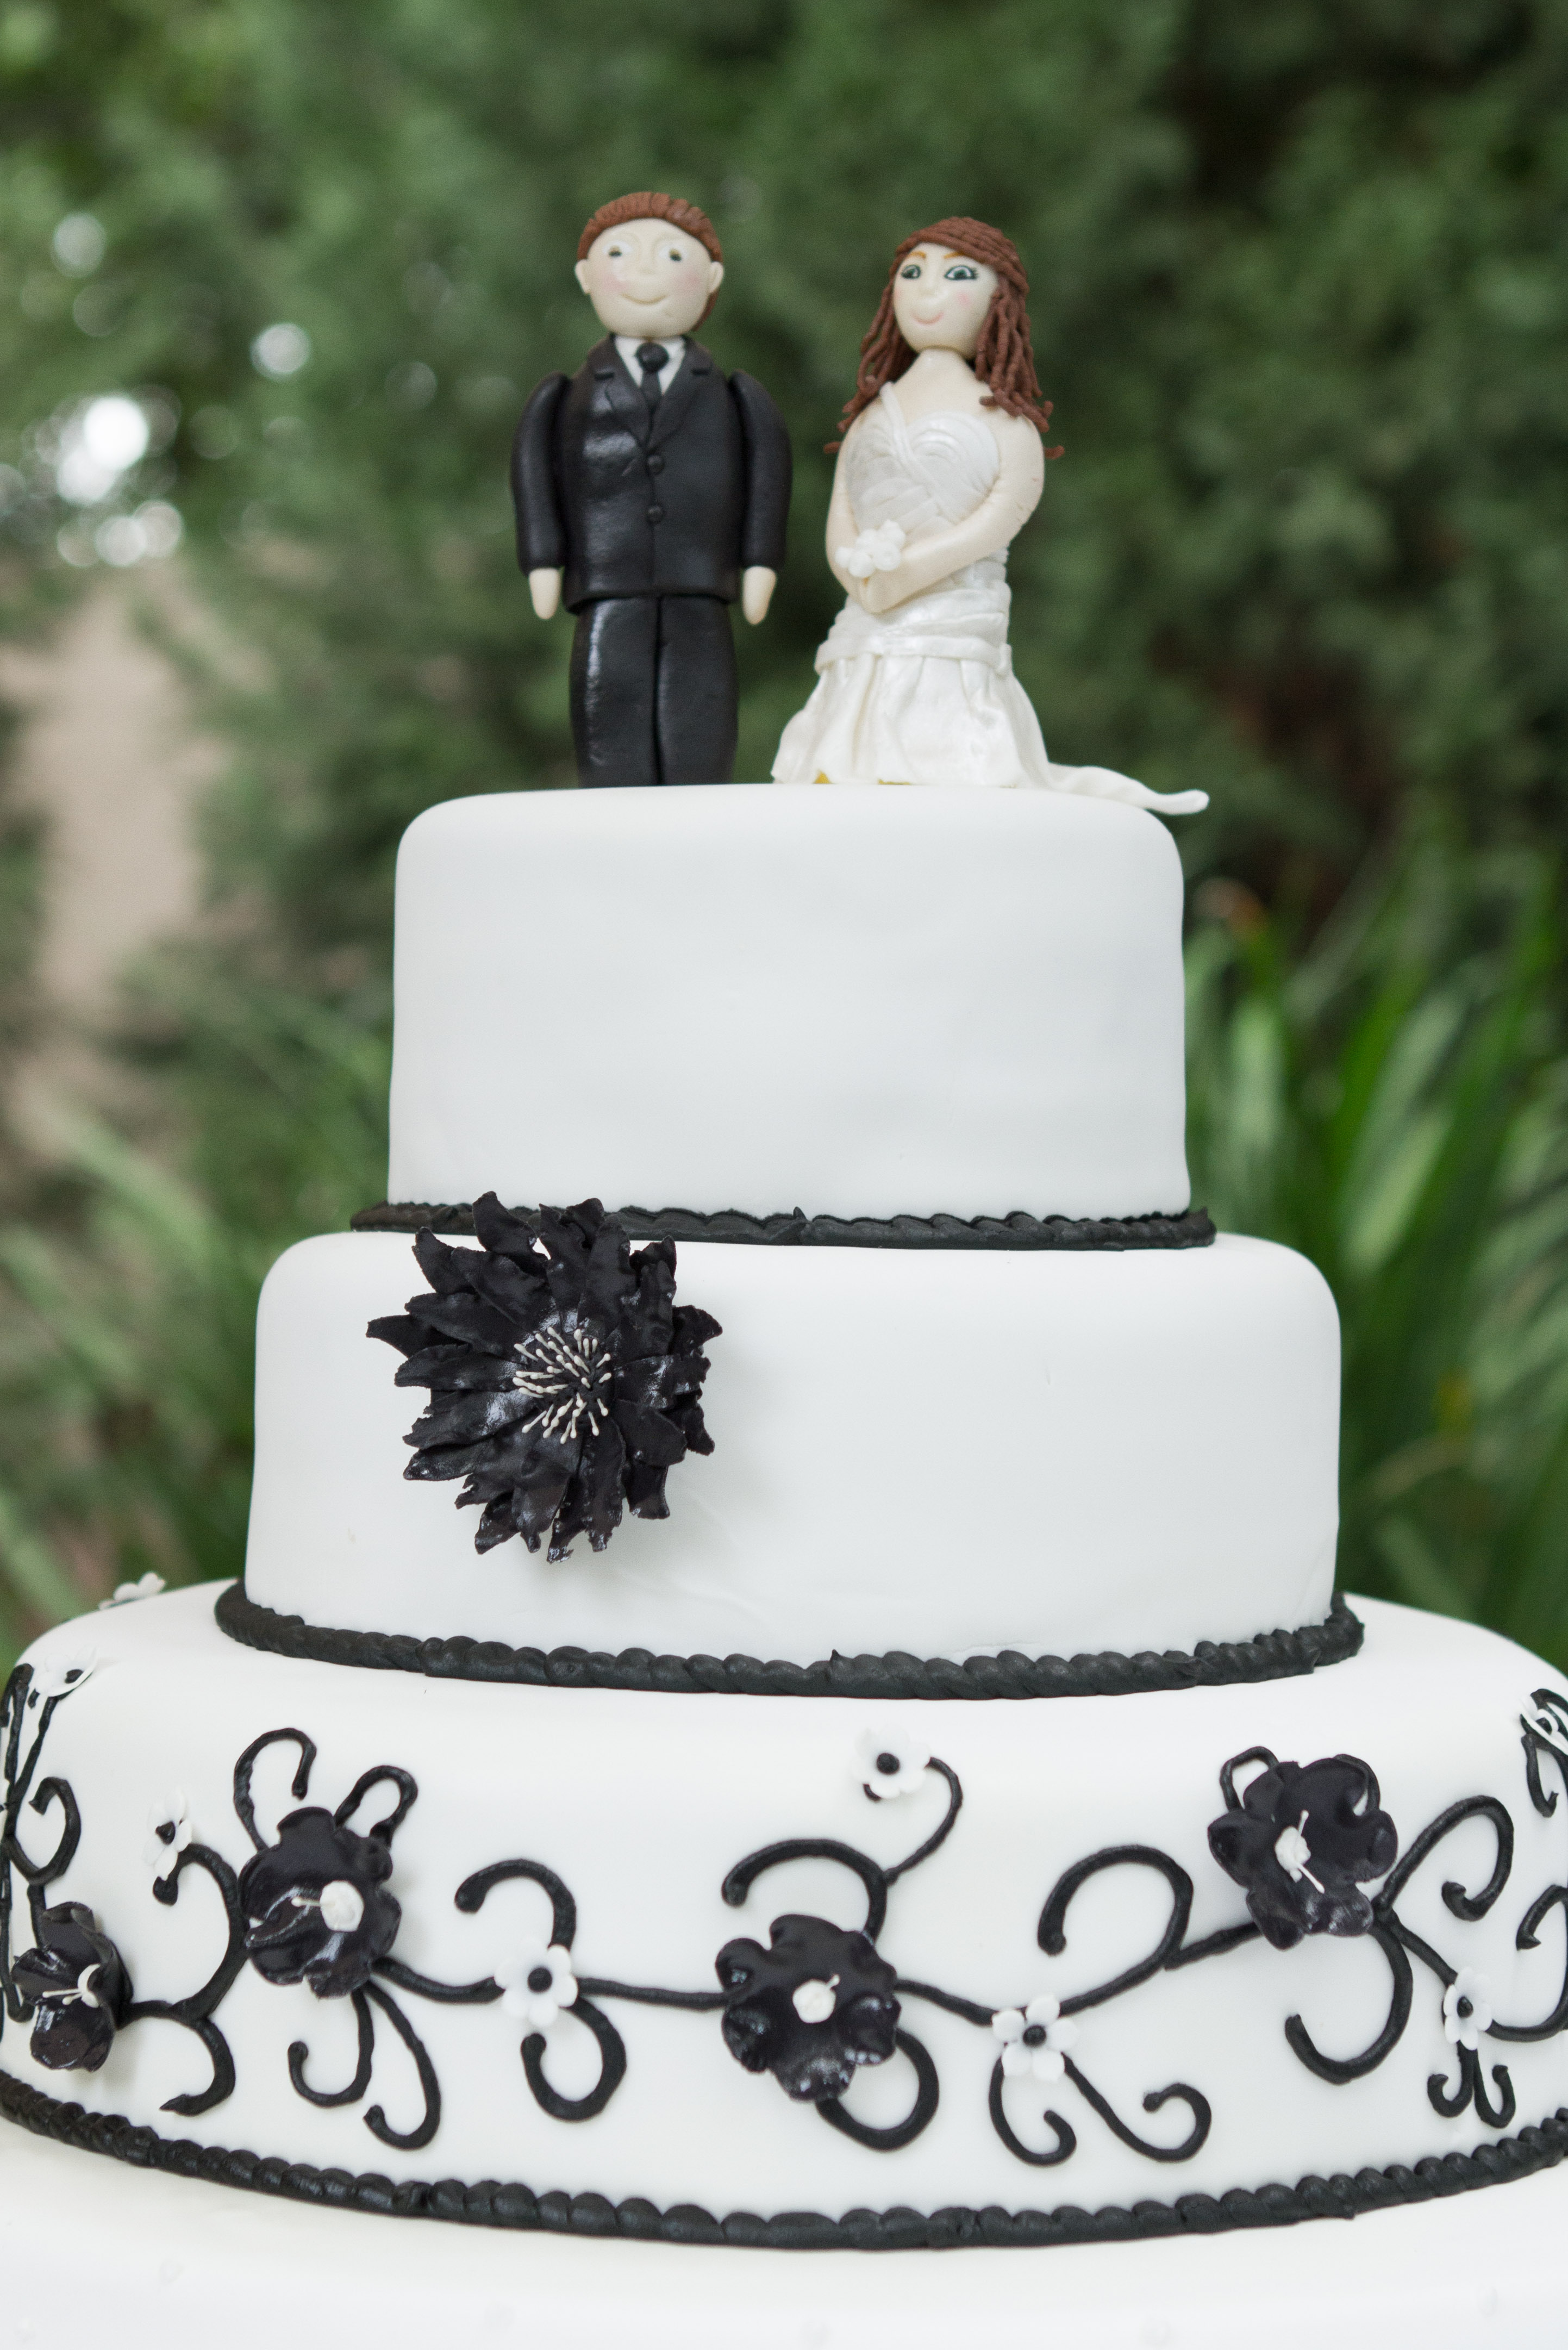 How Much For A Cupcake Wedding Cake